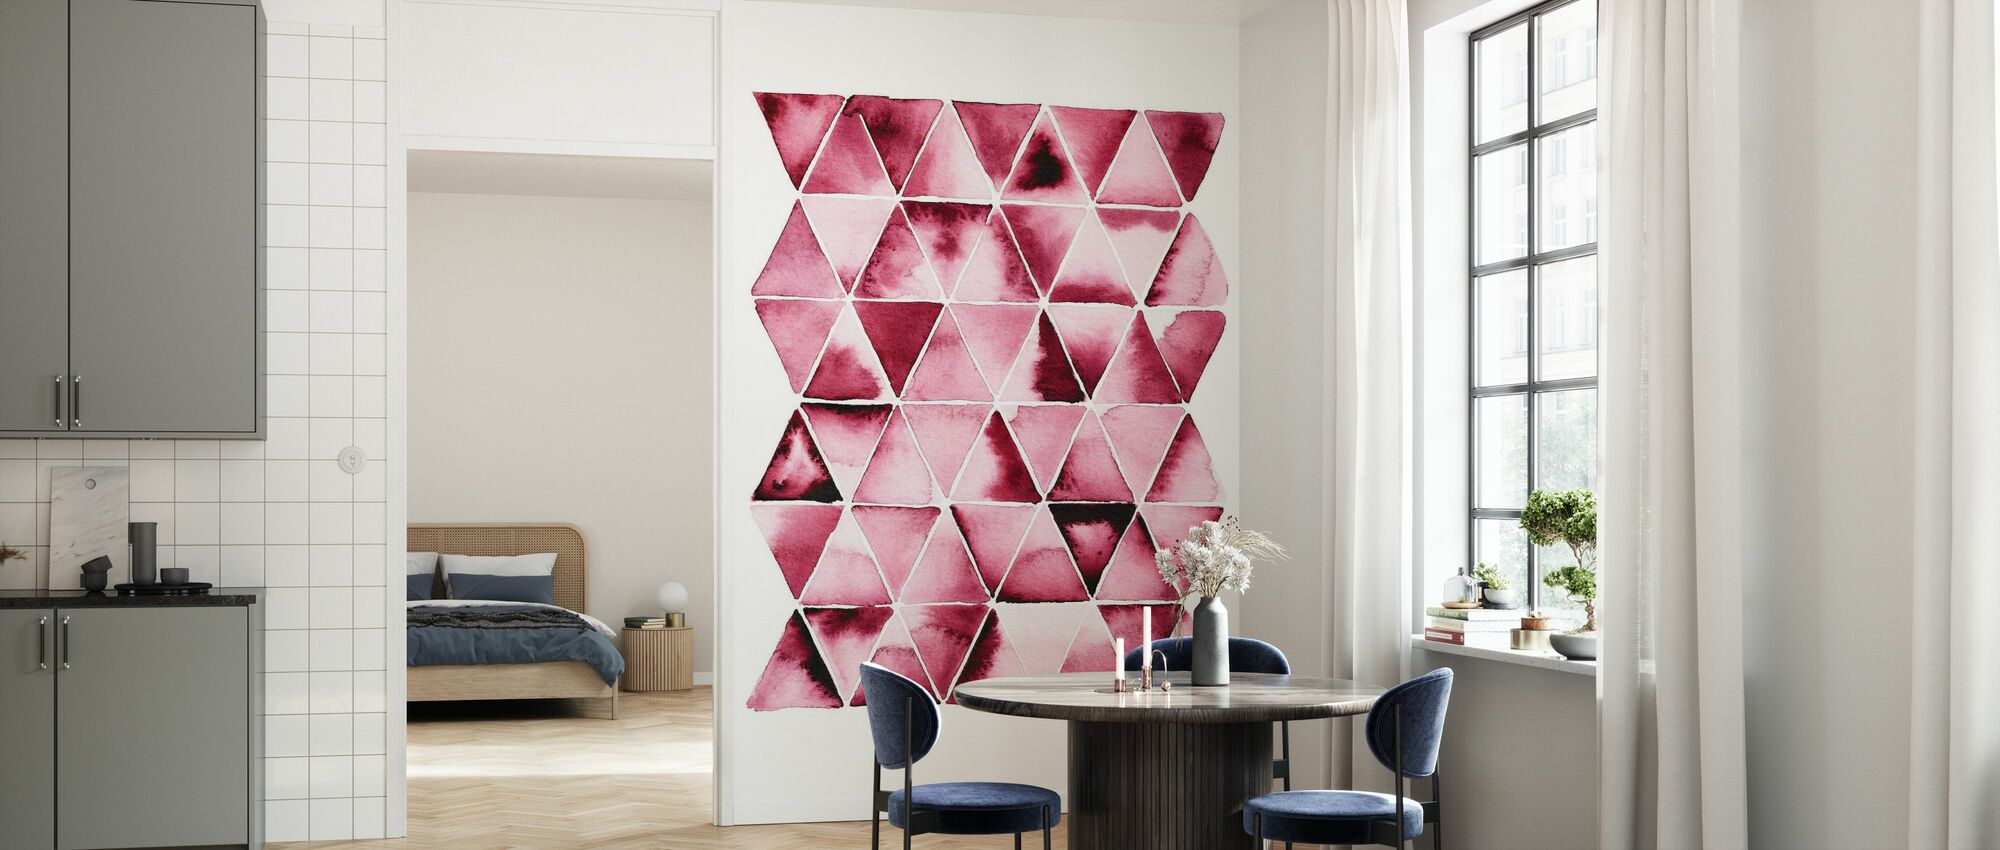 Red Triangles - Wallpaper - Kitchen